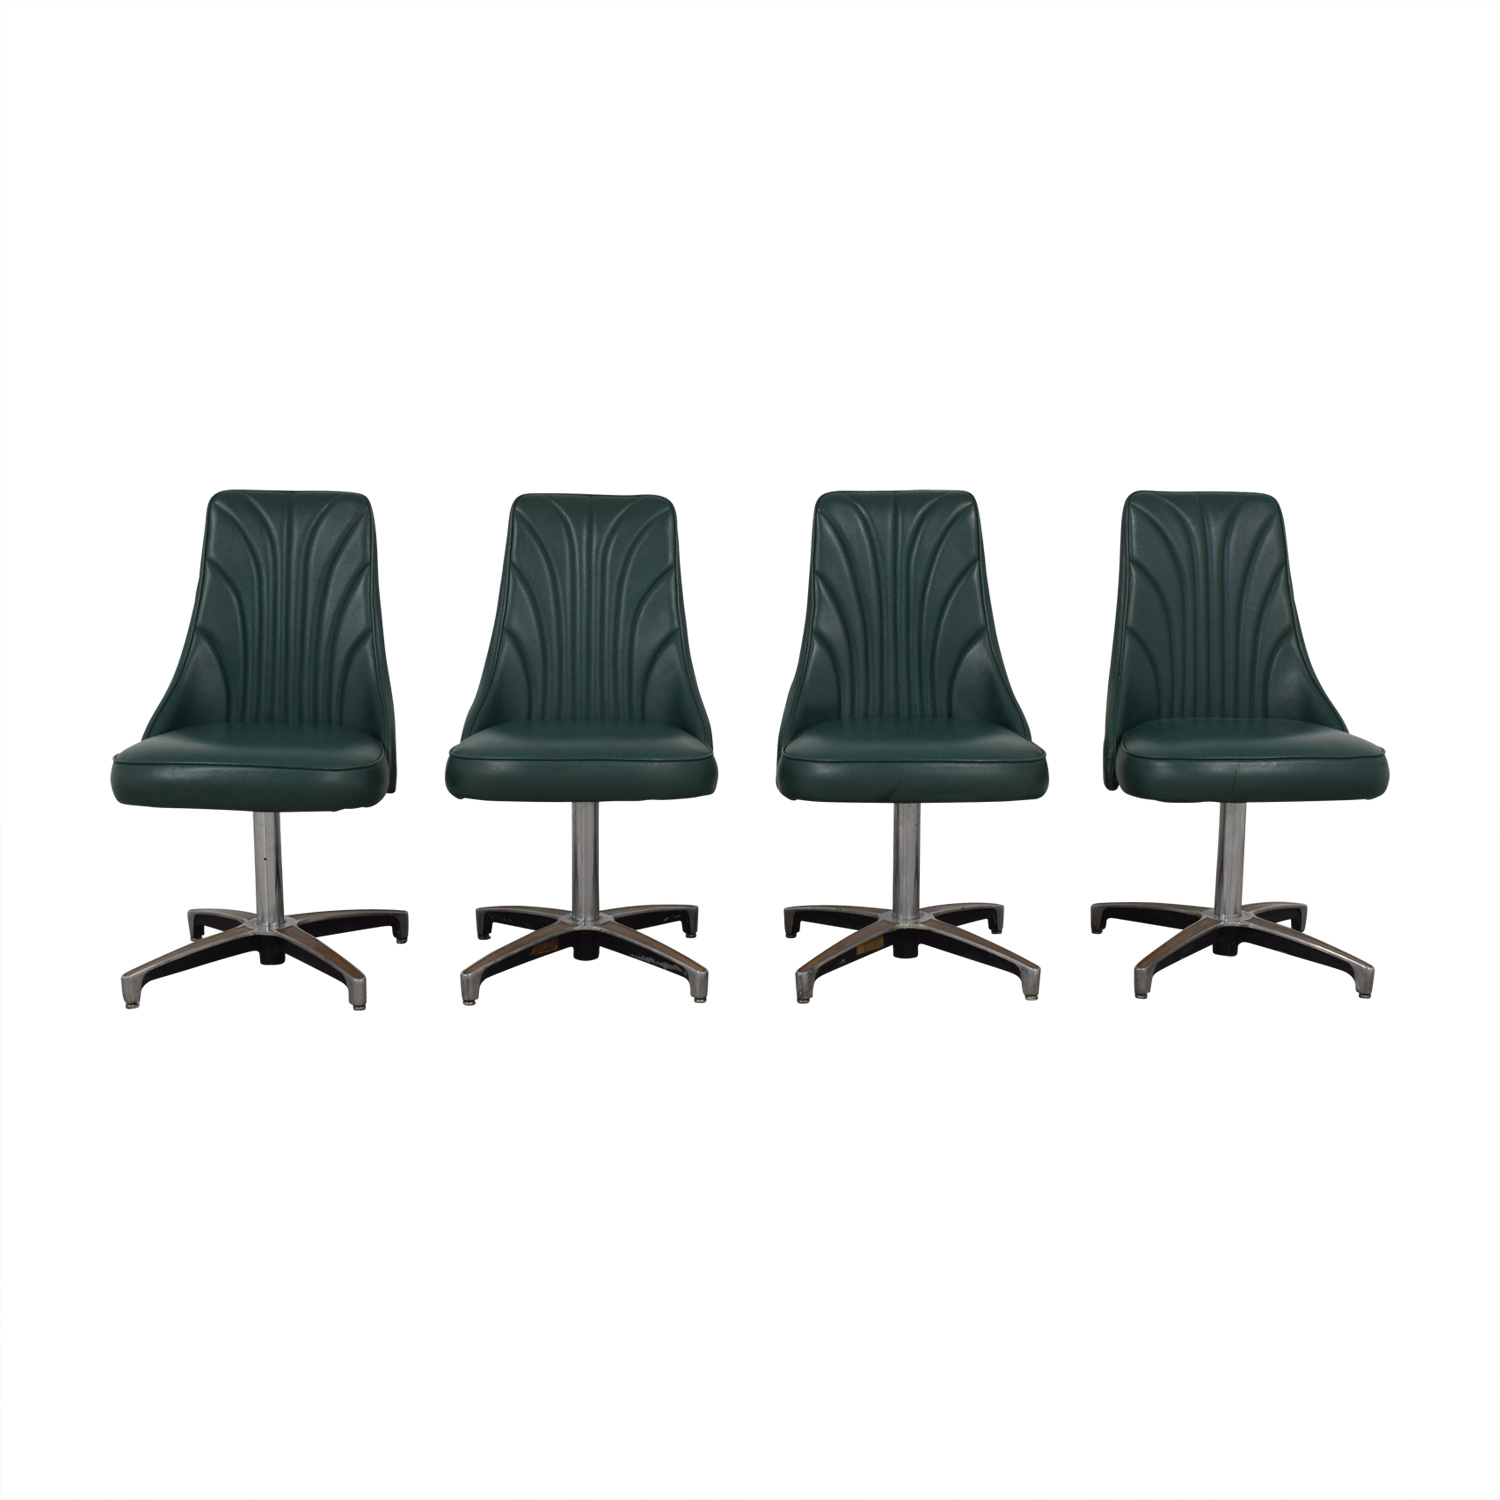 Vintage Teal Green Dining Chairs used